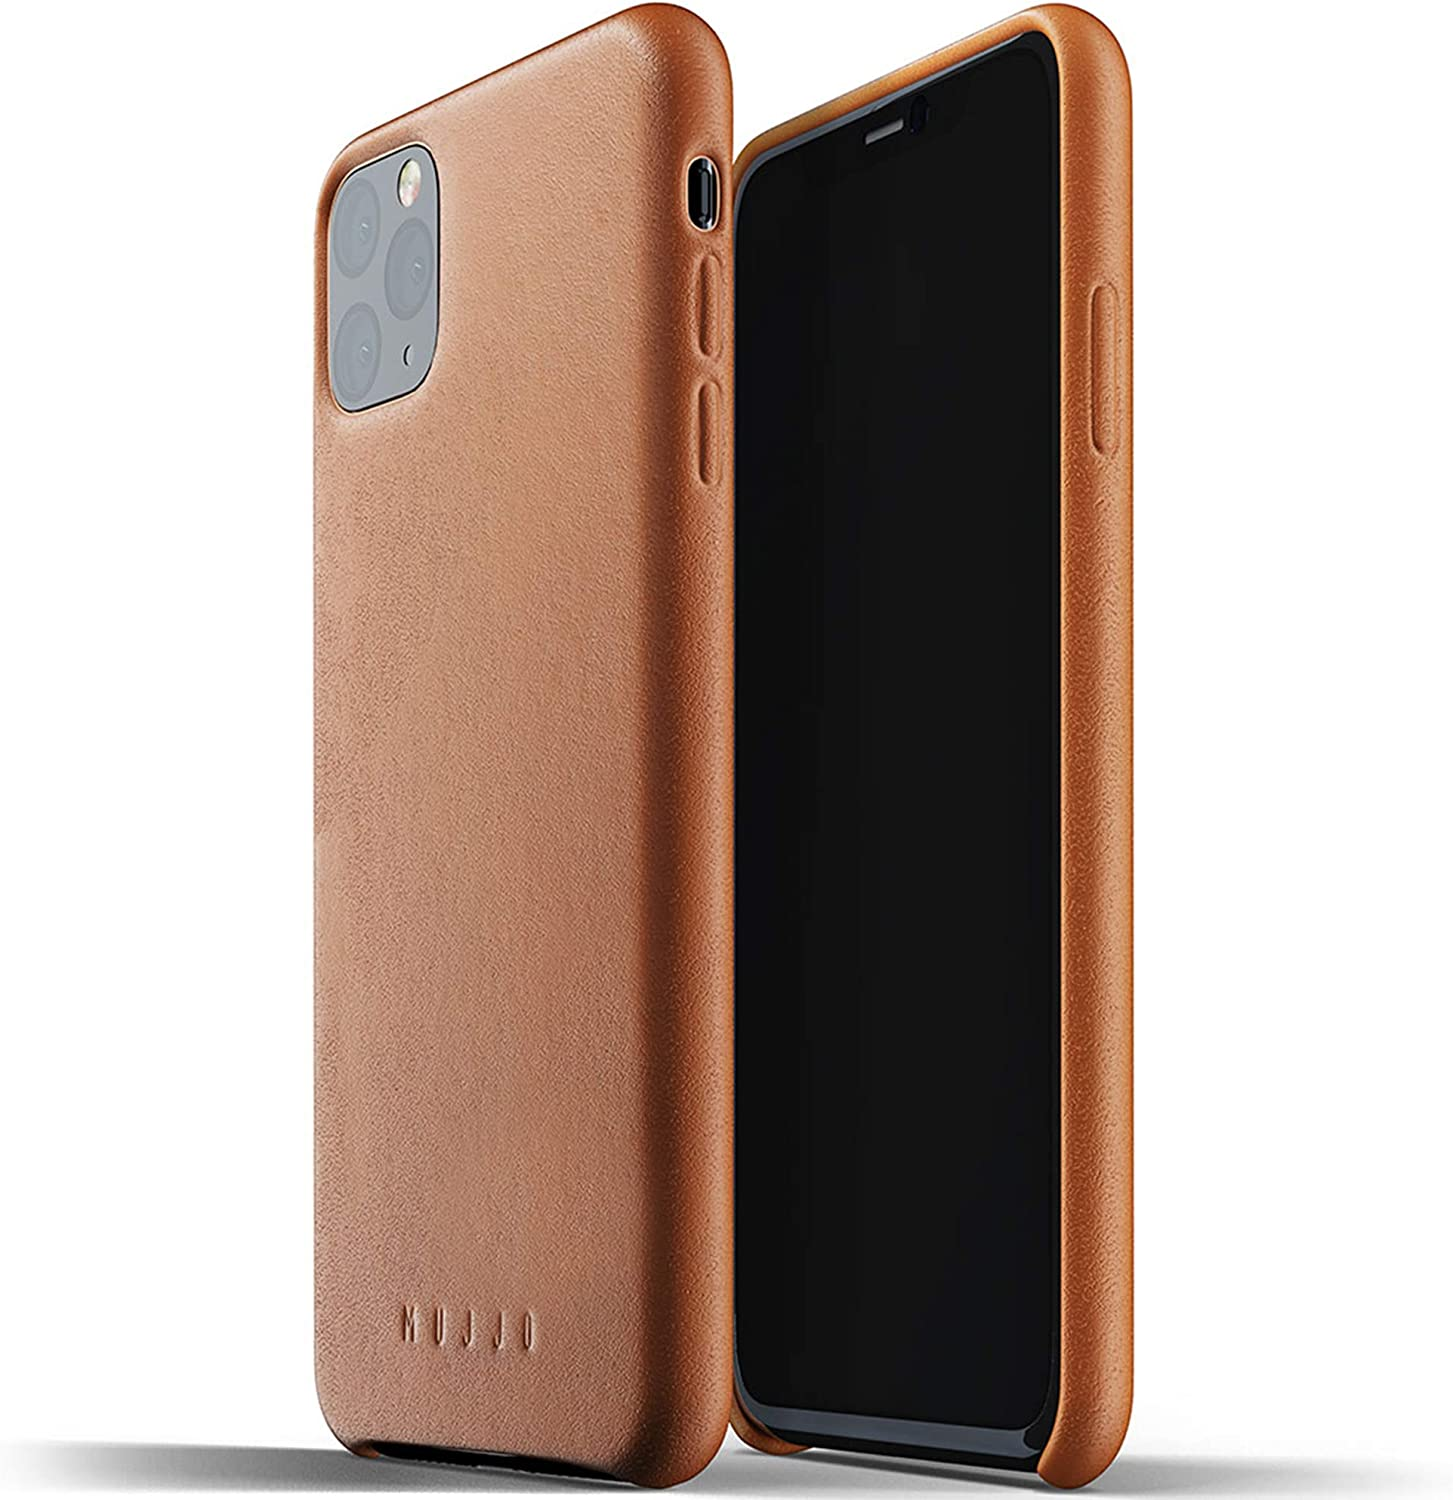 Mujjo Full Leather Case for Apple iPhone 11 Pro Max | Premium Soft Supple Leather, Unique Natural Aging Effect | Leather Wrapped, Super Slim (Tan)